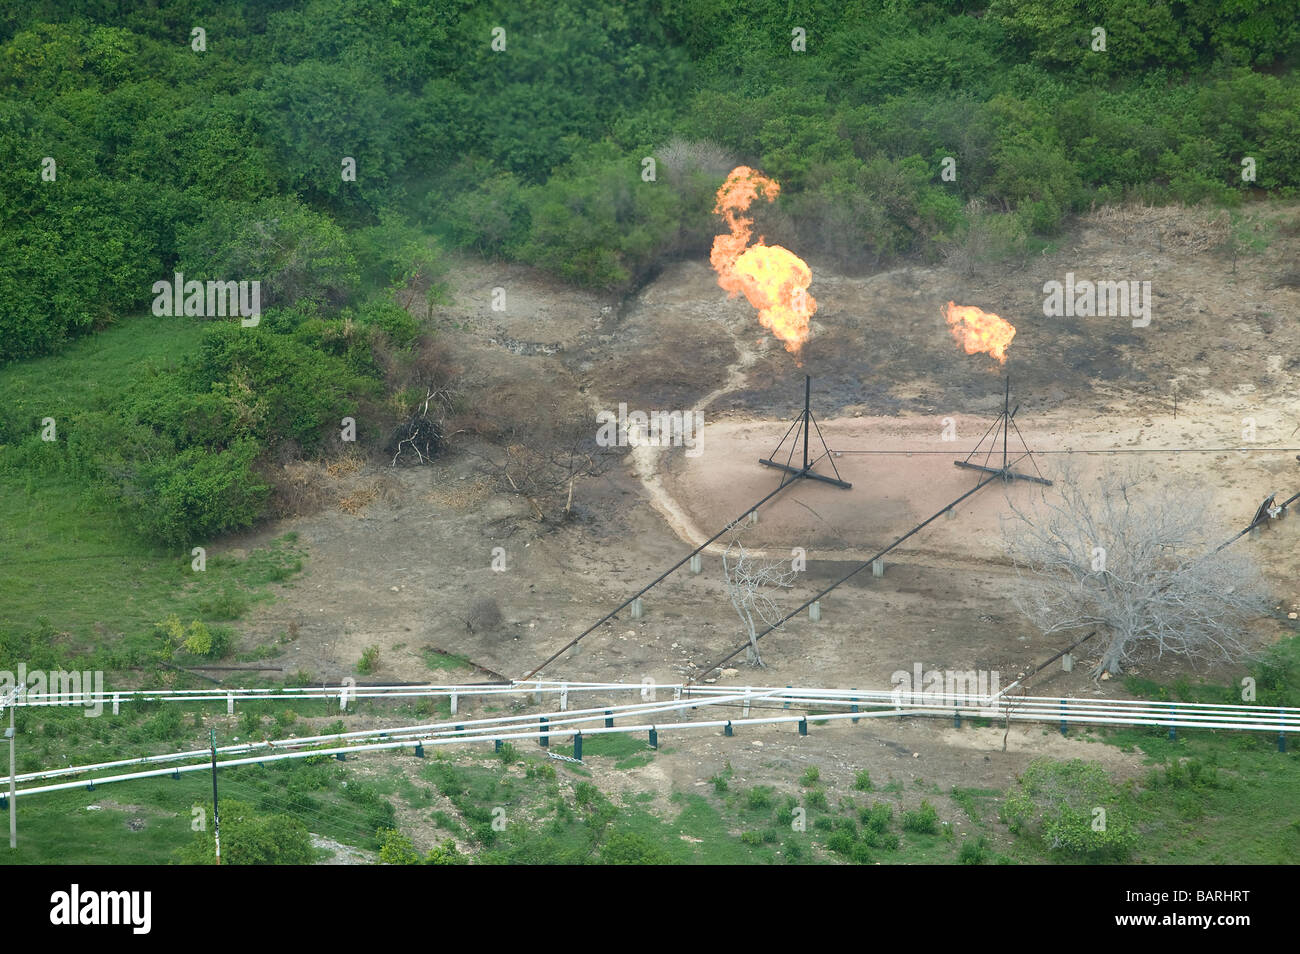 aerial view above PEMEX natural gas tranmission pipelines flare stacks northeastern Mexico - Stock Image